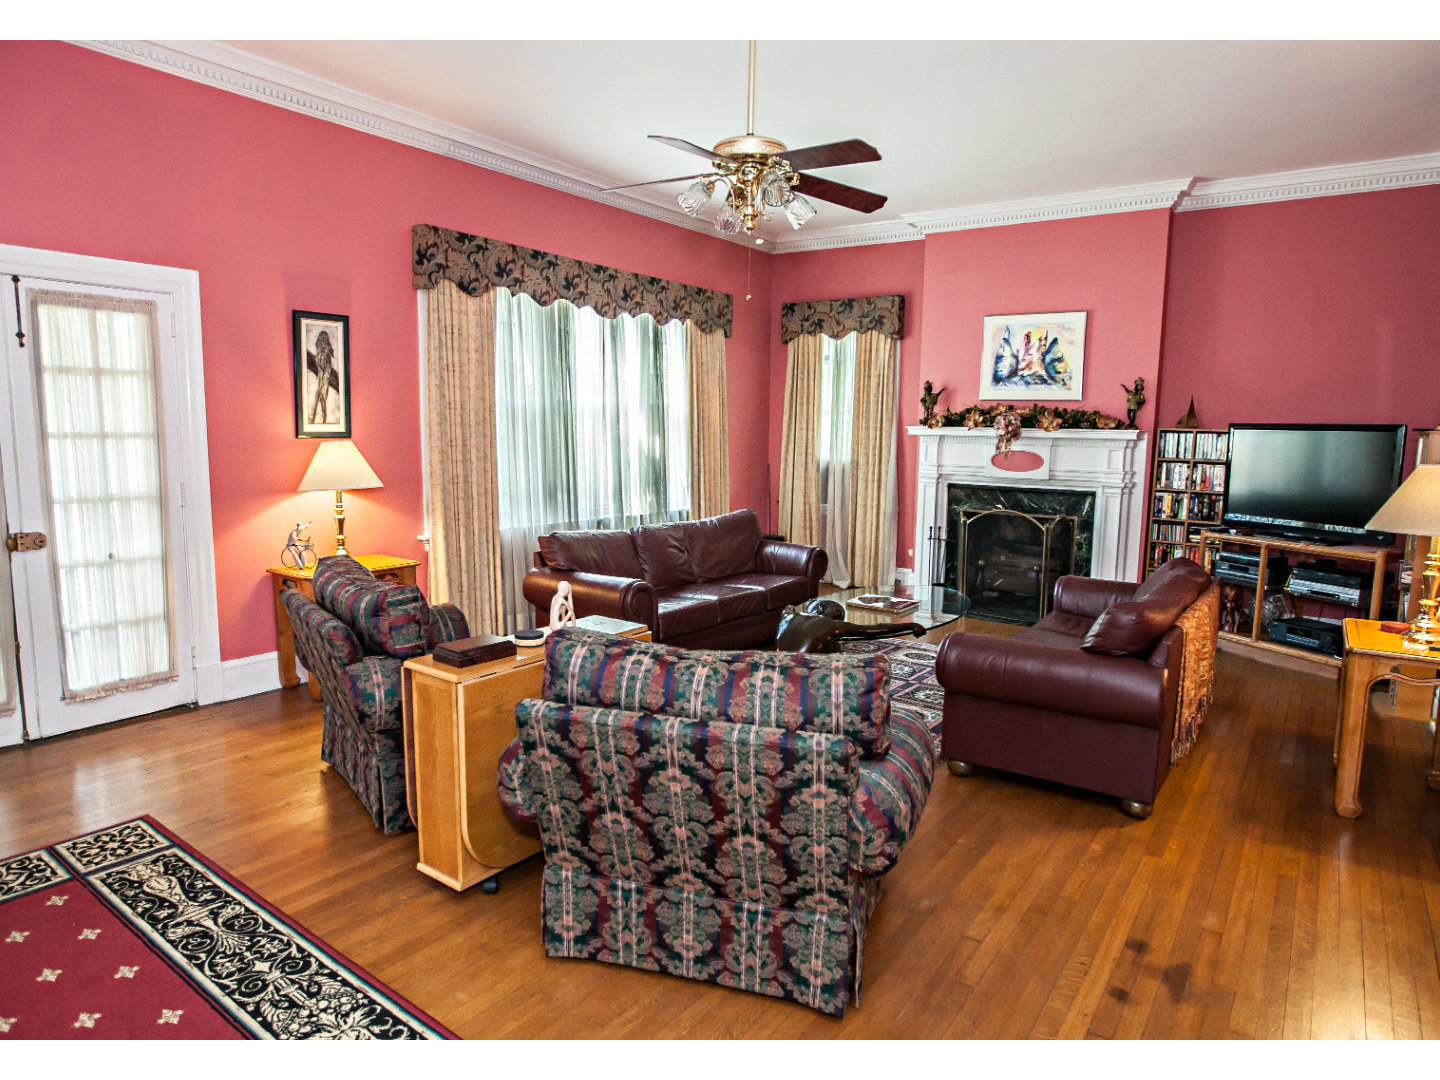 A living room filled with furniture and a fireplace at Morehead Manor Bed and Breakfast.